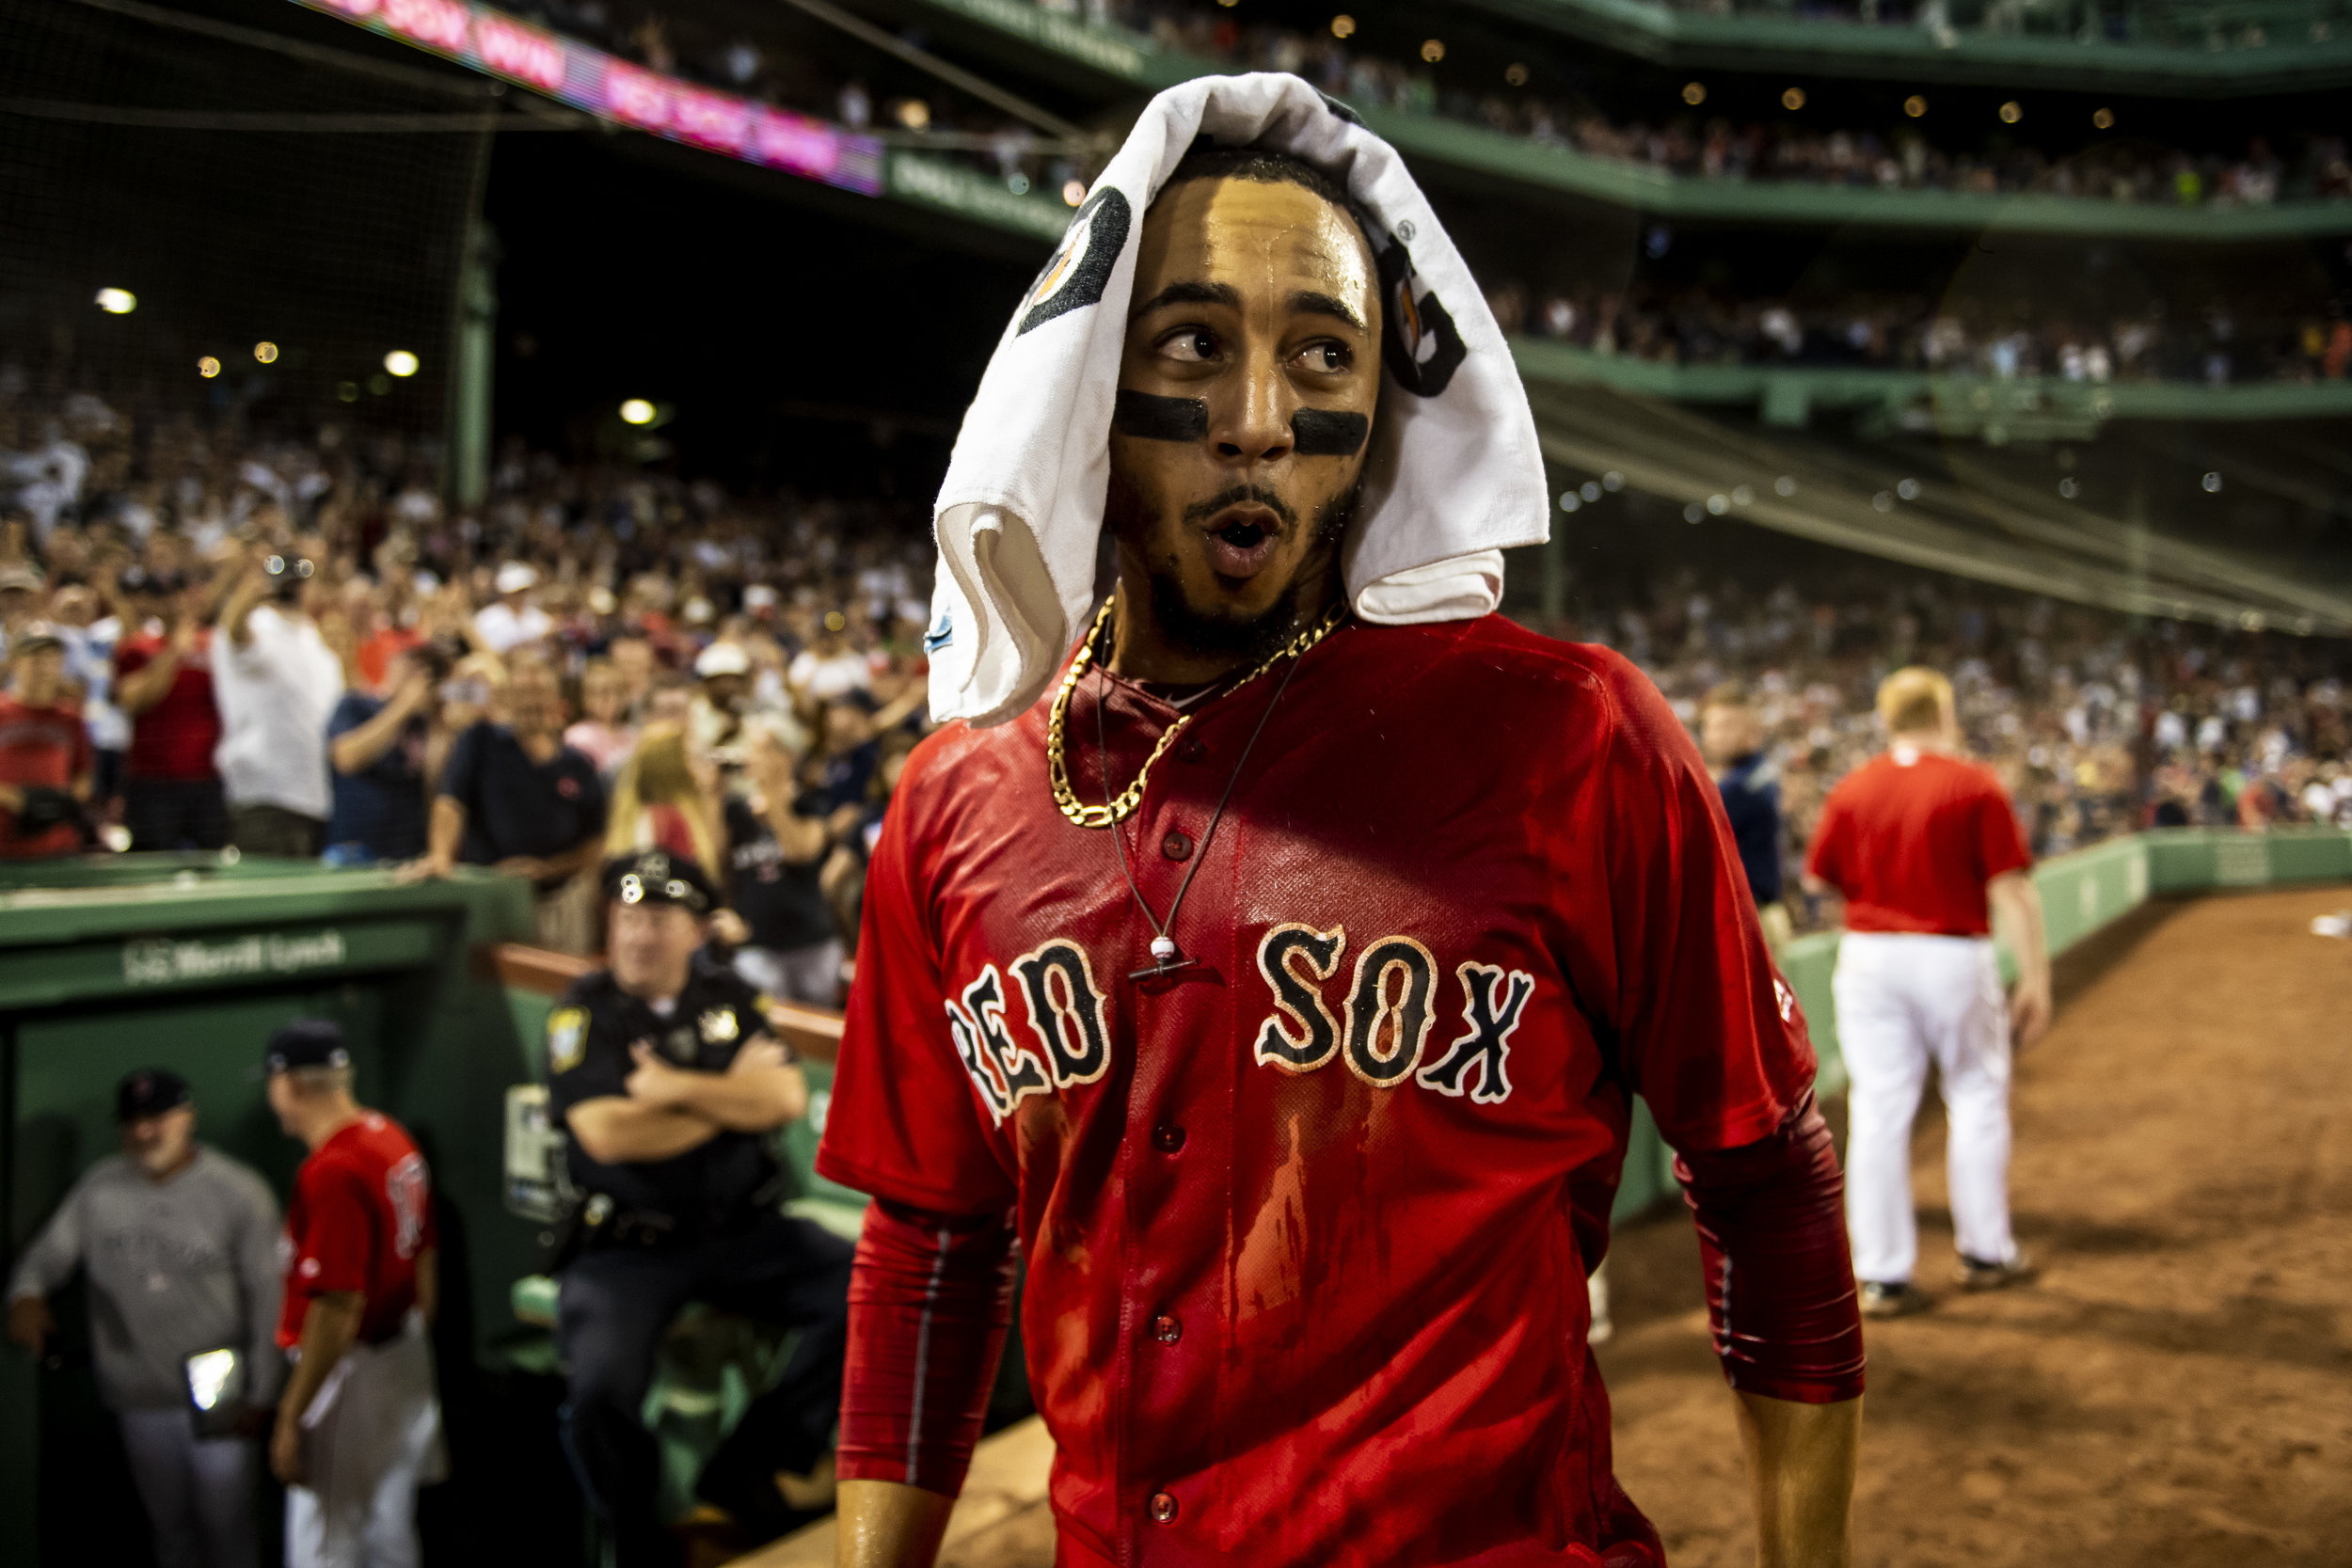 July 26, 2018, Boston, MA: Boston Red Sox outfielder Mookie Betts reacts to having Gatorade dumped on him after hitting the walk-off home run as the Boston Red Sox defeated the Minnesota Twins at Fenway Park in Boston, Massachusetts on Friday, July 27, 2018. (Photo by Matthew Thomas/Boston Red Sox)